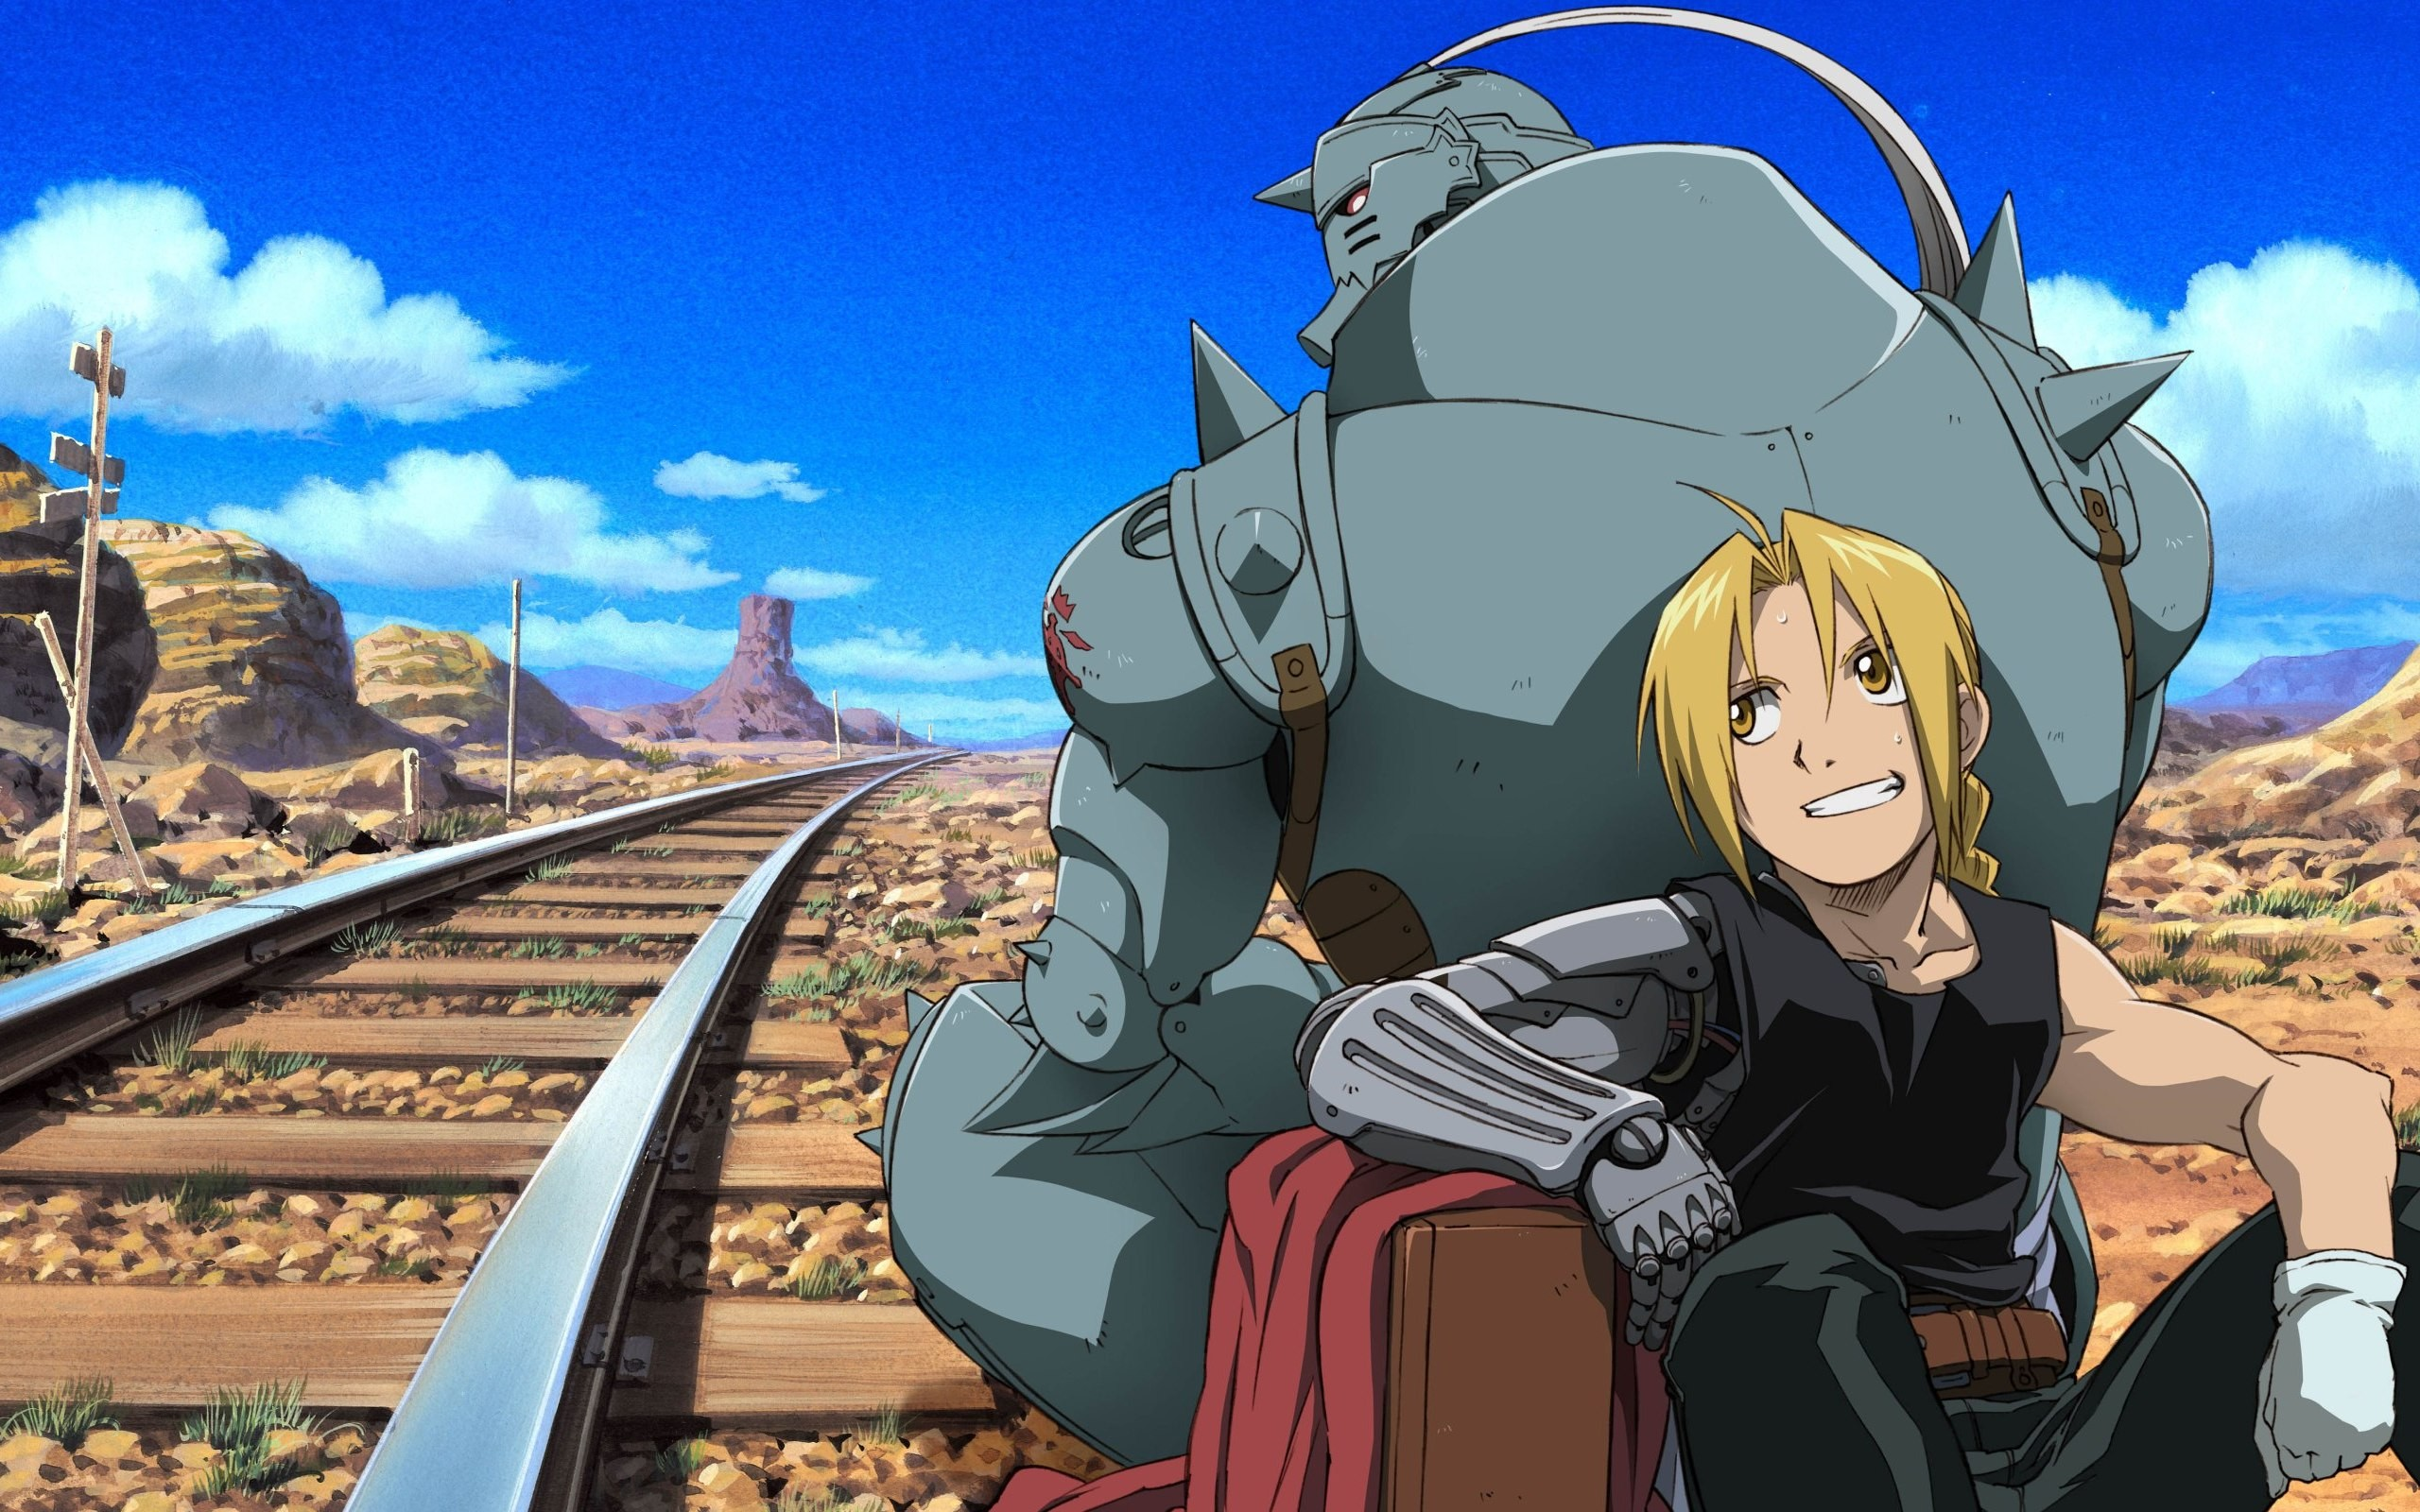 FMA wallpaper ·① Download free beautiful HD backgrounds for desktop, mobile, laptop in any ...